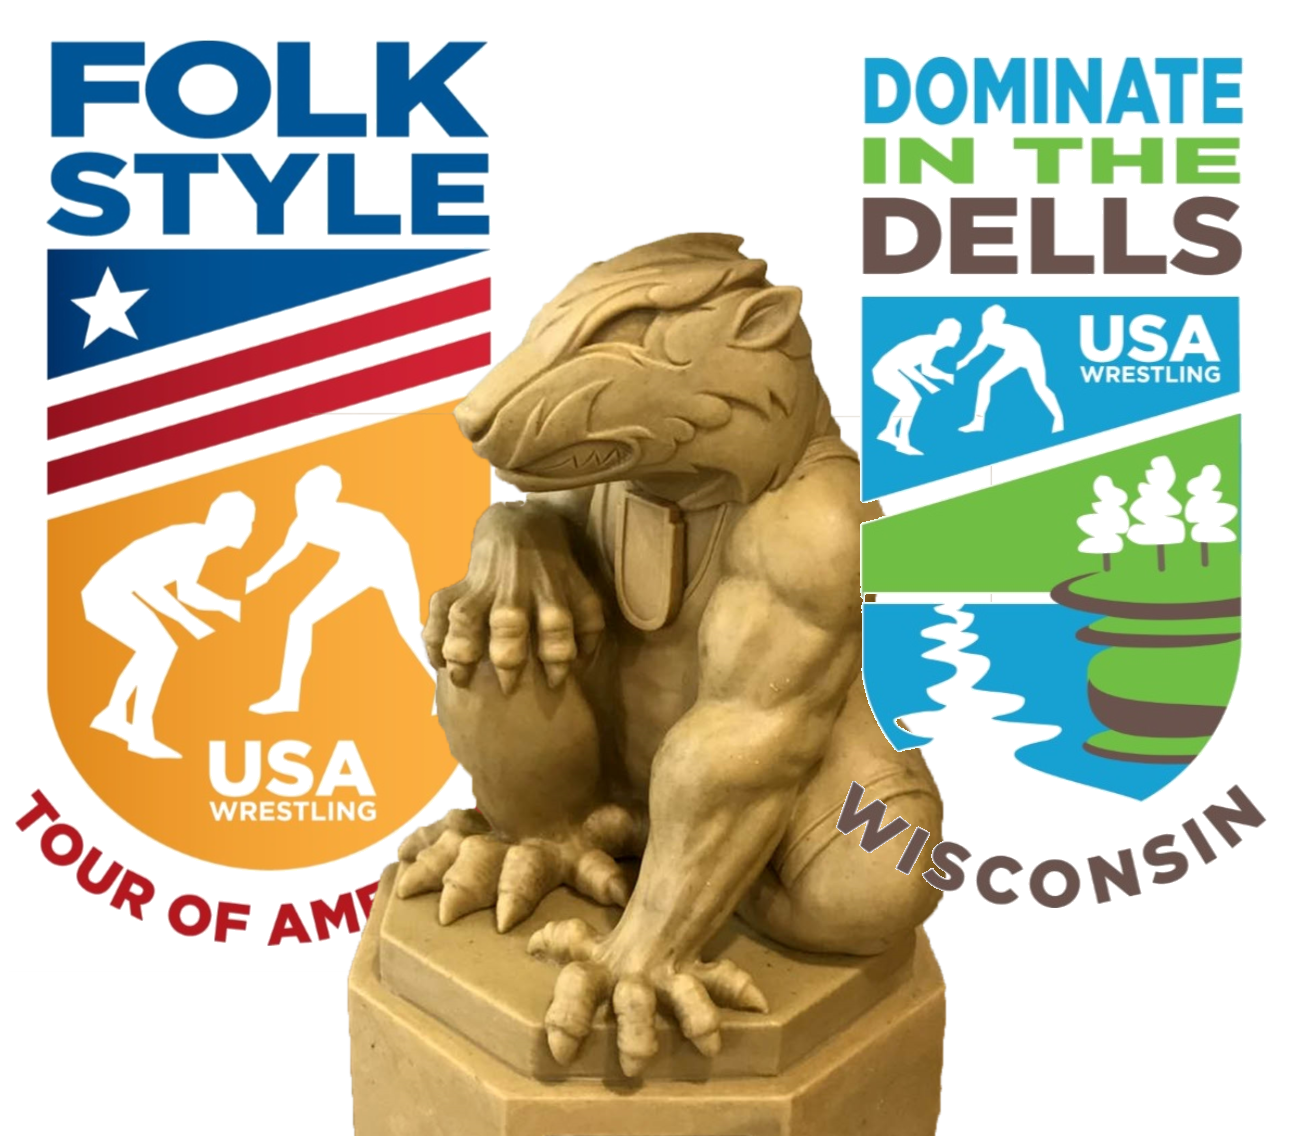 2019 Folkstyle Tour of America - Dominate in the Dells